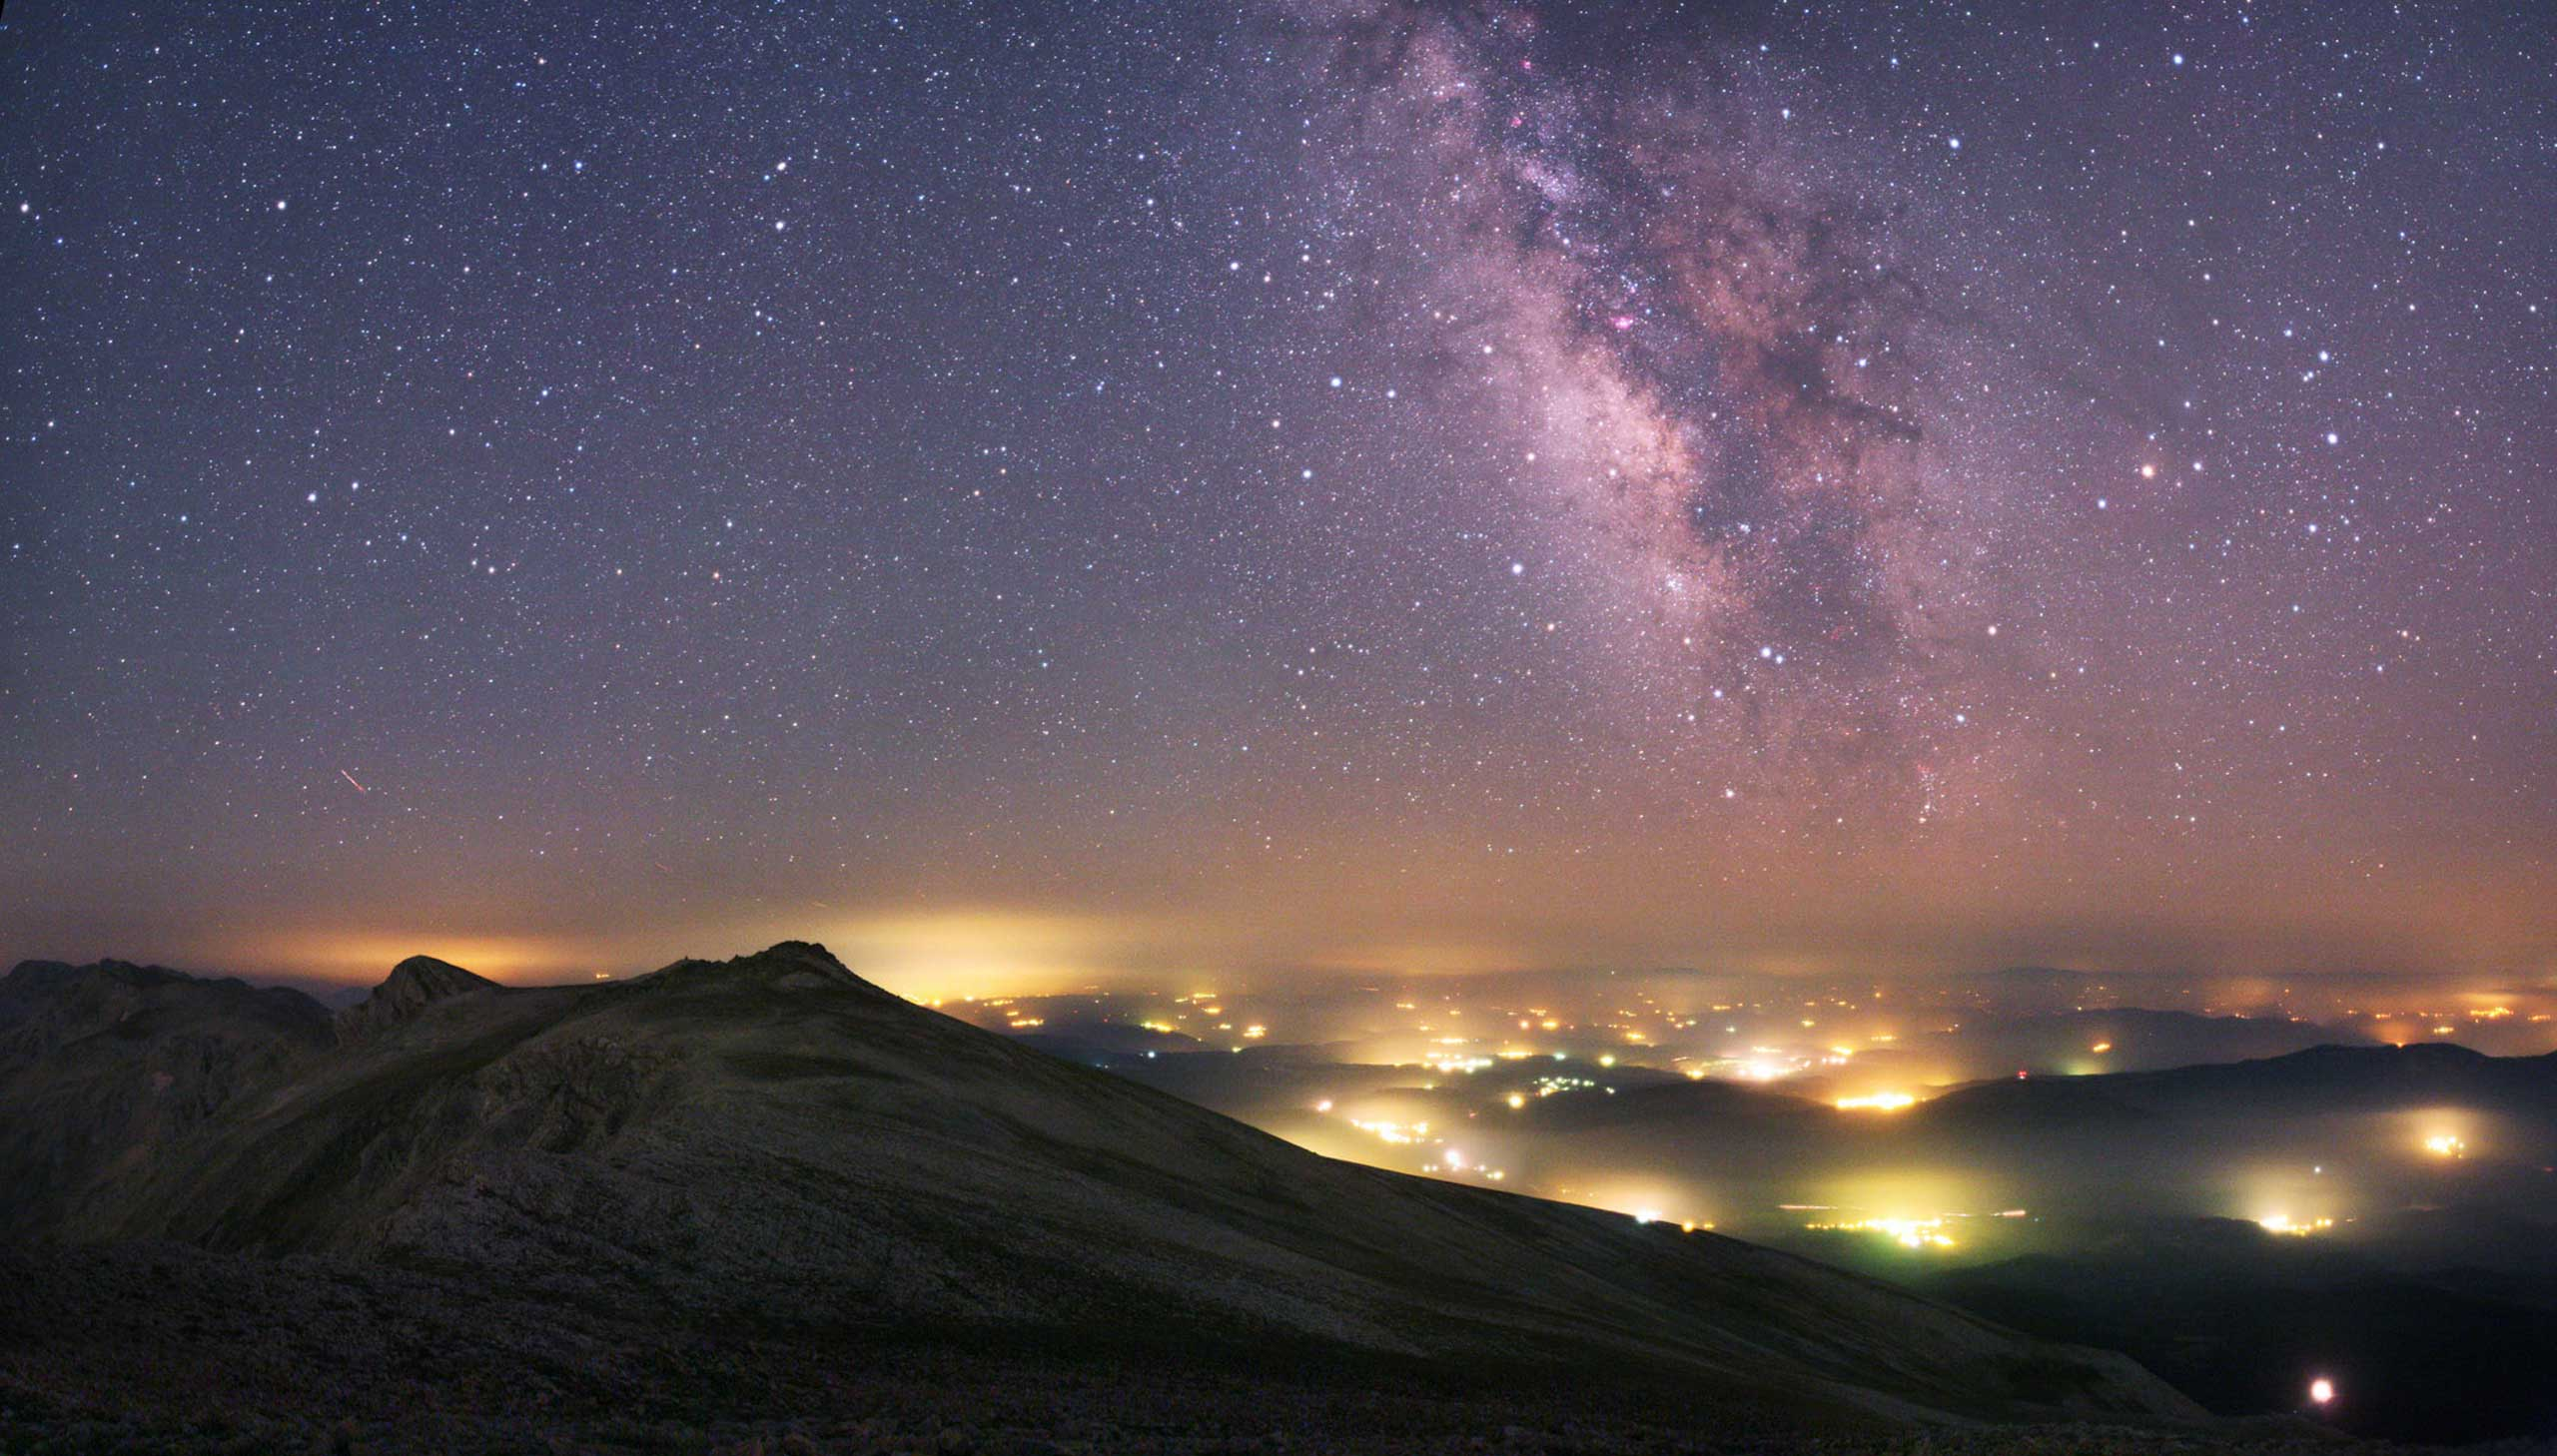 Dark mountain peaks frame two distinct lightscapes - the distant glow of towns and villages, and the majestic star fields of The Milky Way. Making the most of an August night, the photographer got this shot after trekking out to the Uludag National Park near his hometown of Bursa, Turkey.